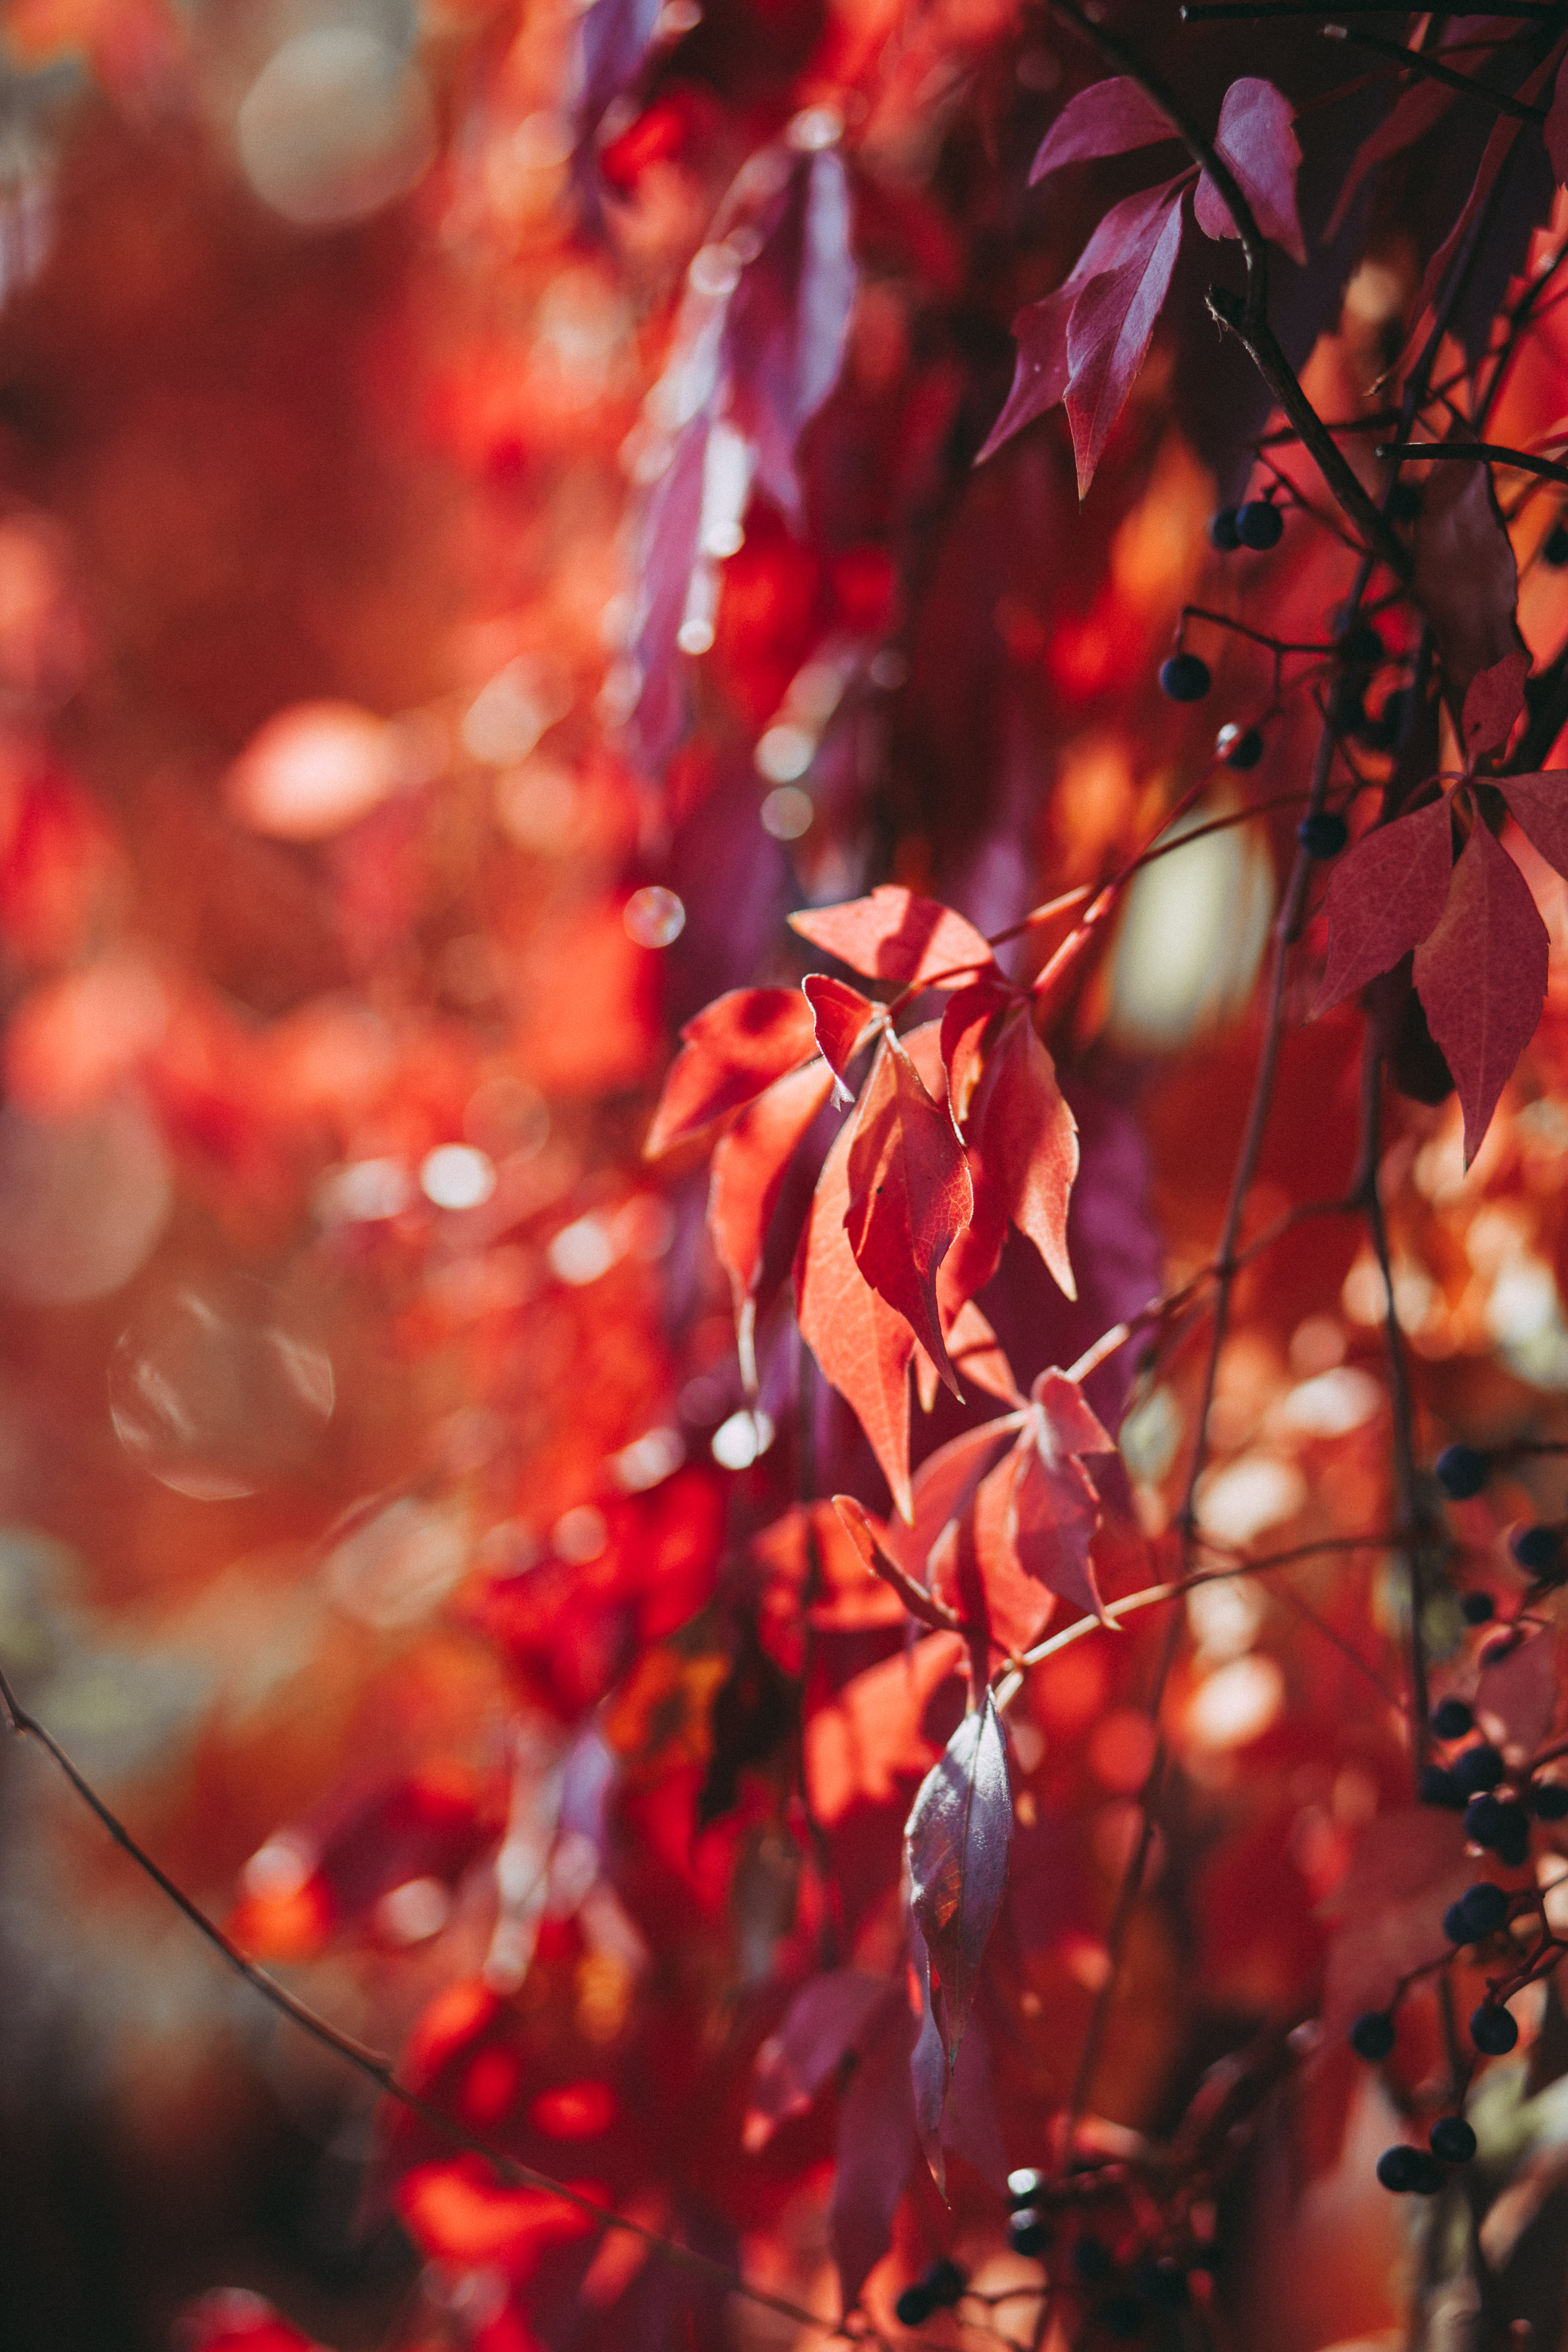 Selective Focus Photography of Red Flowers